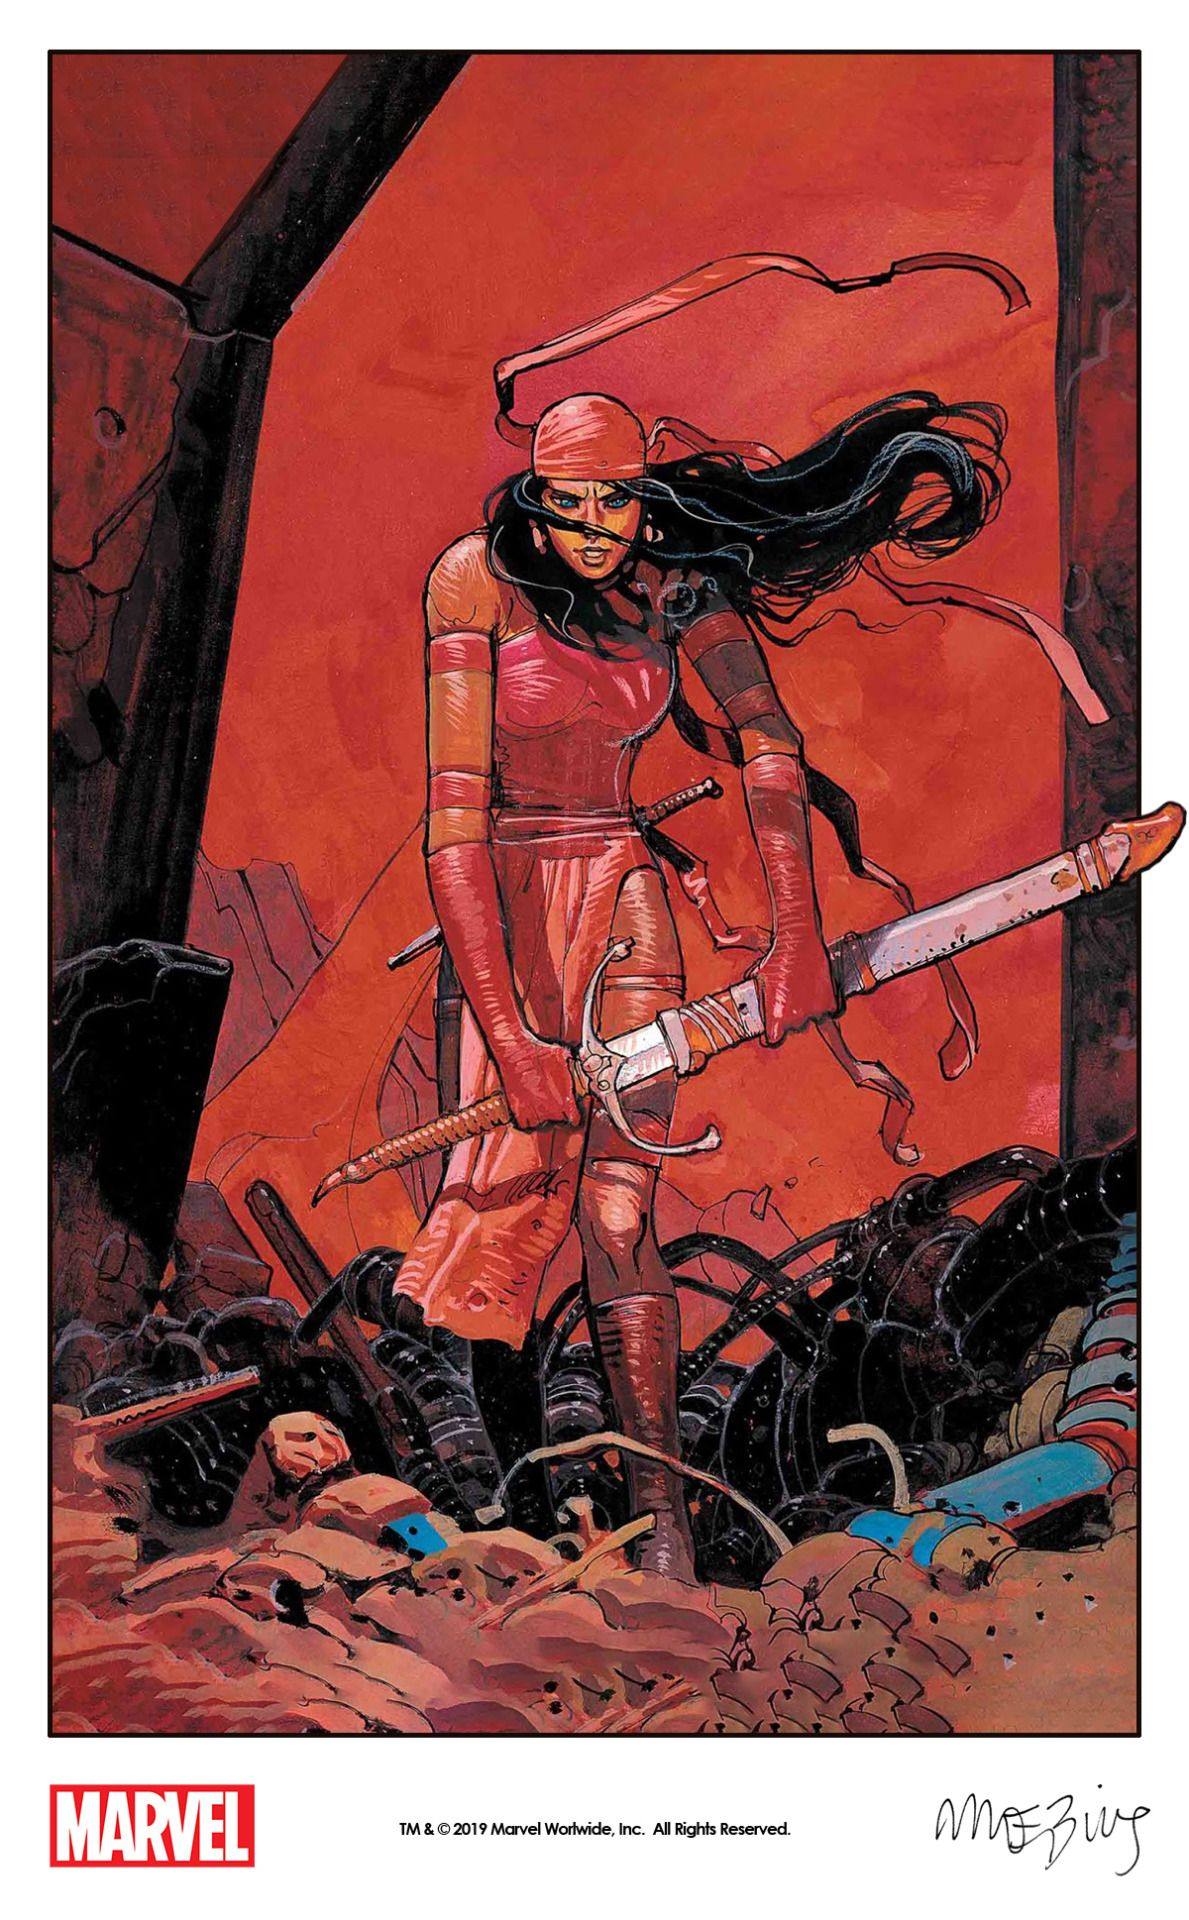 Elektra By Moebius From A Marvel Press Poster 1990 That Will Used As The Hidden Gem Variant Cover For Savage Avengers 1 201 Punisher Marvel Book Art Marvel